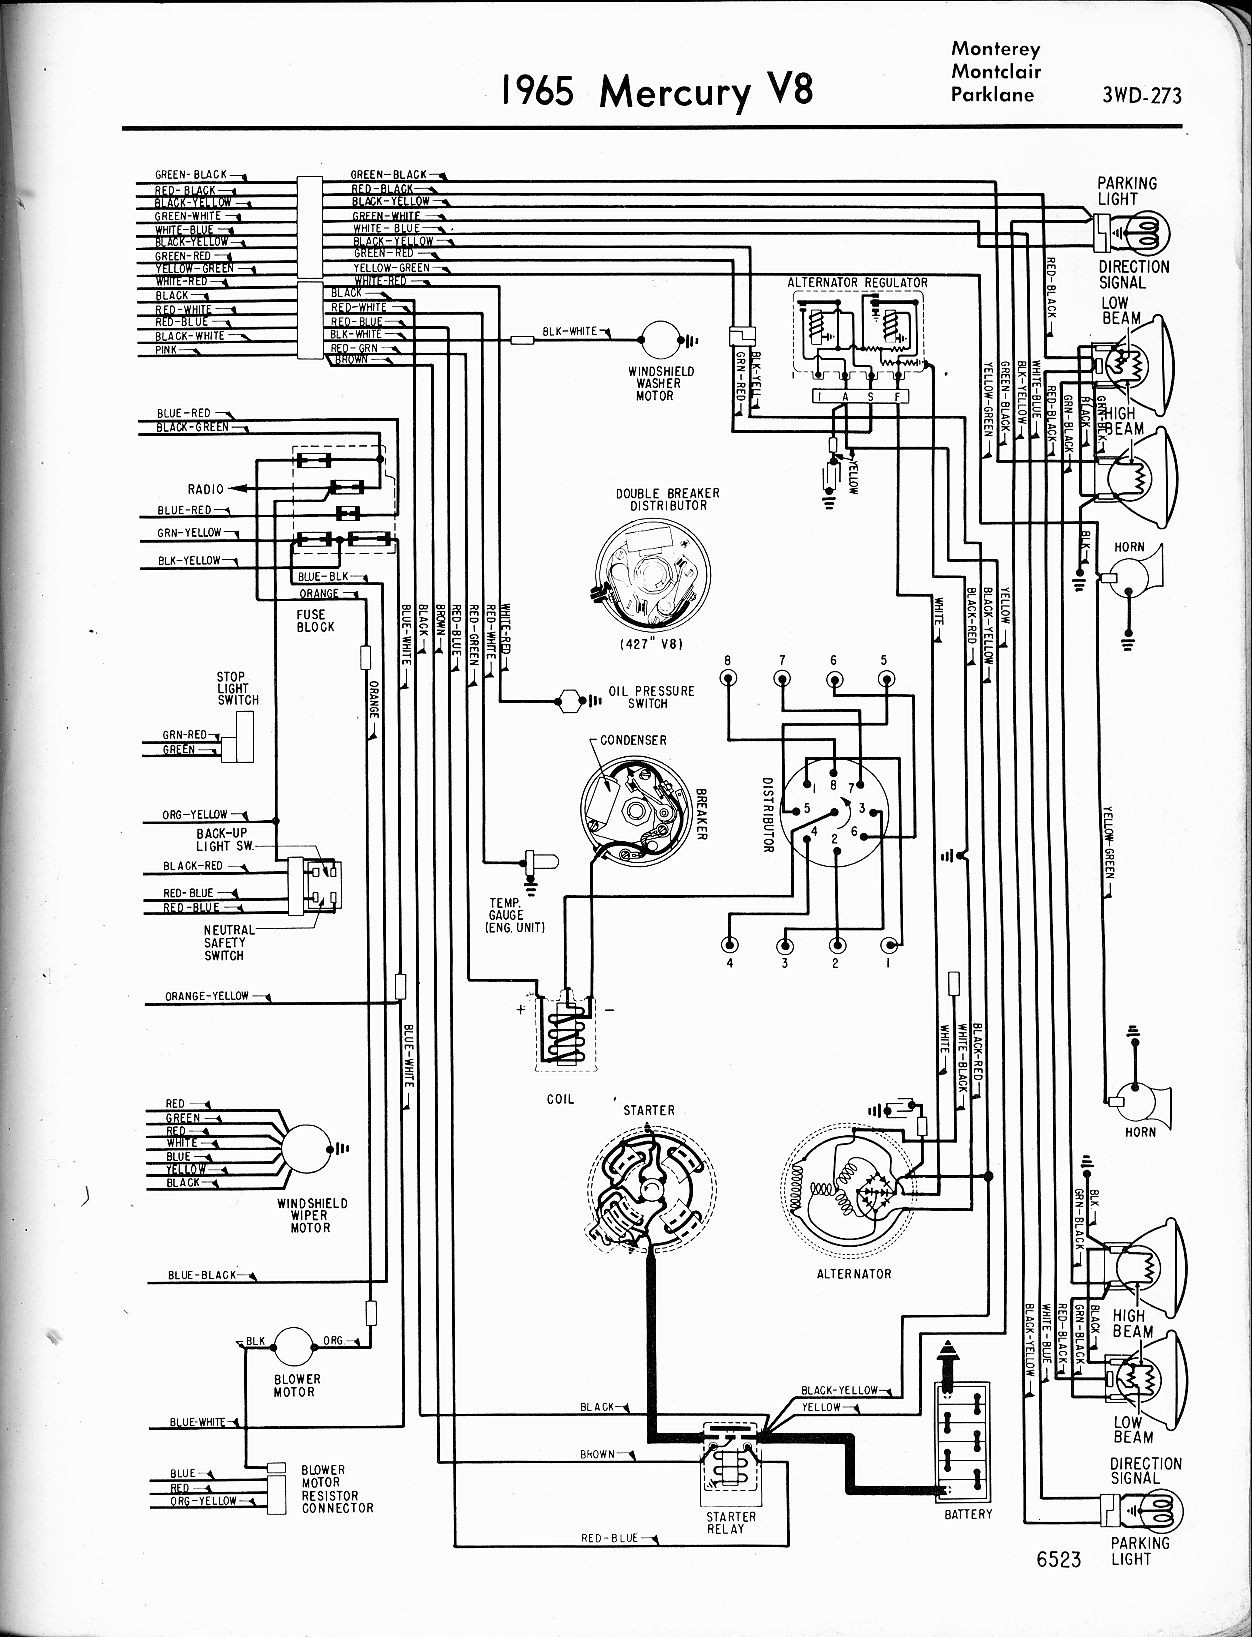 1998 mercury mystique radio wiring diagram